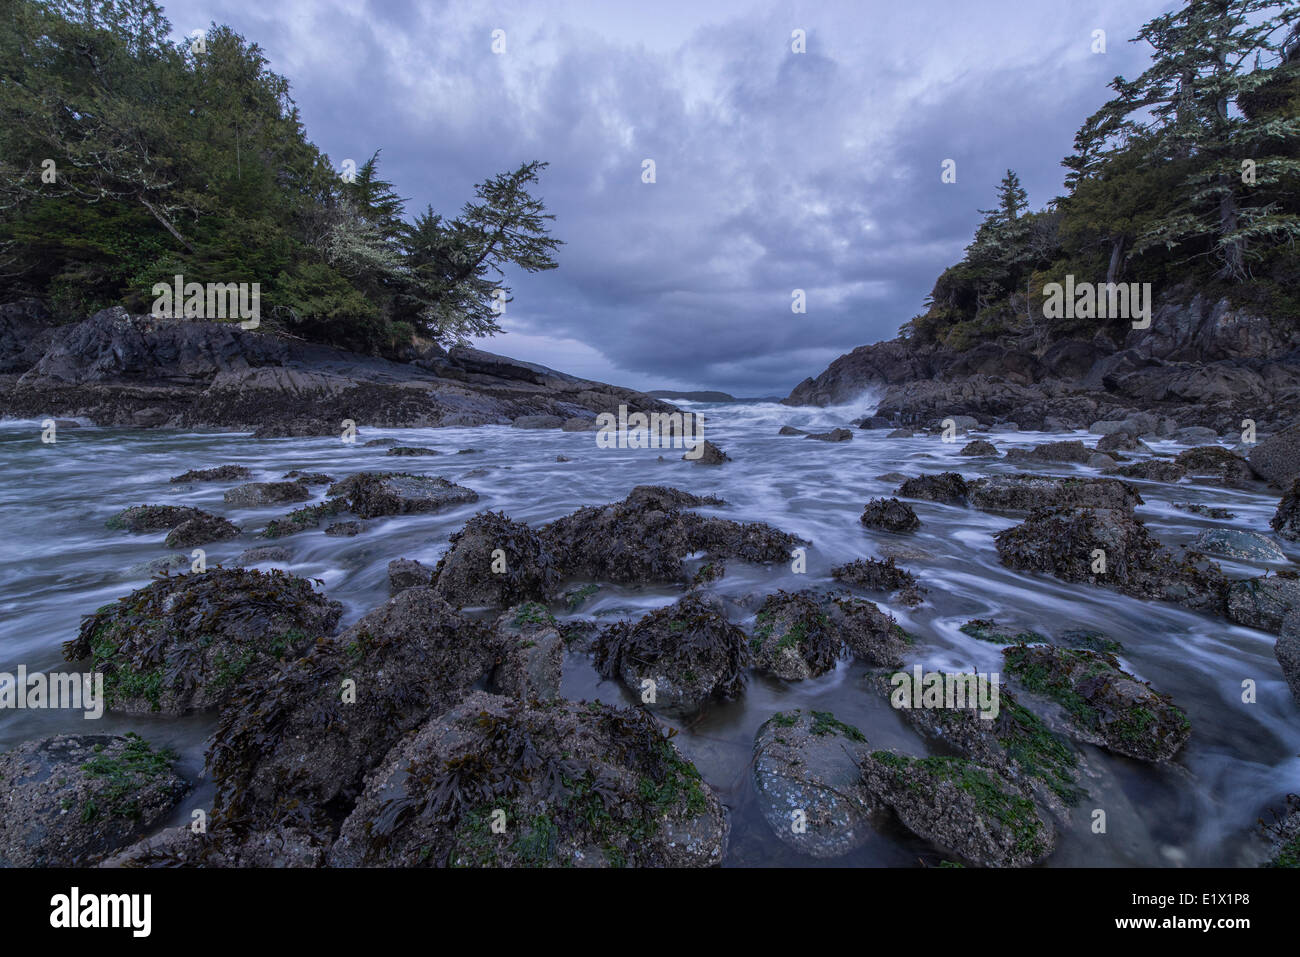 Dawn breaks over Crystal Cove, Tofino as the tide rises to cover the rocks. Vancouver Isalnd, British Columbia, - Stock Image